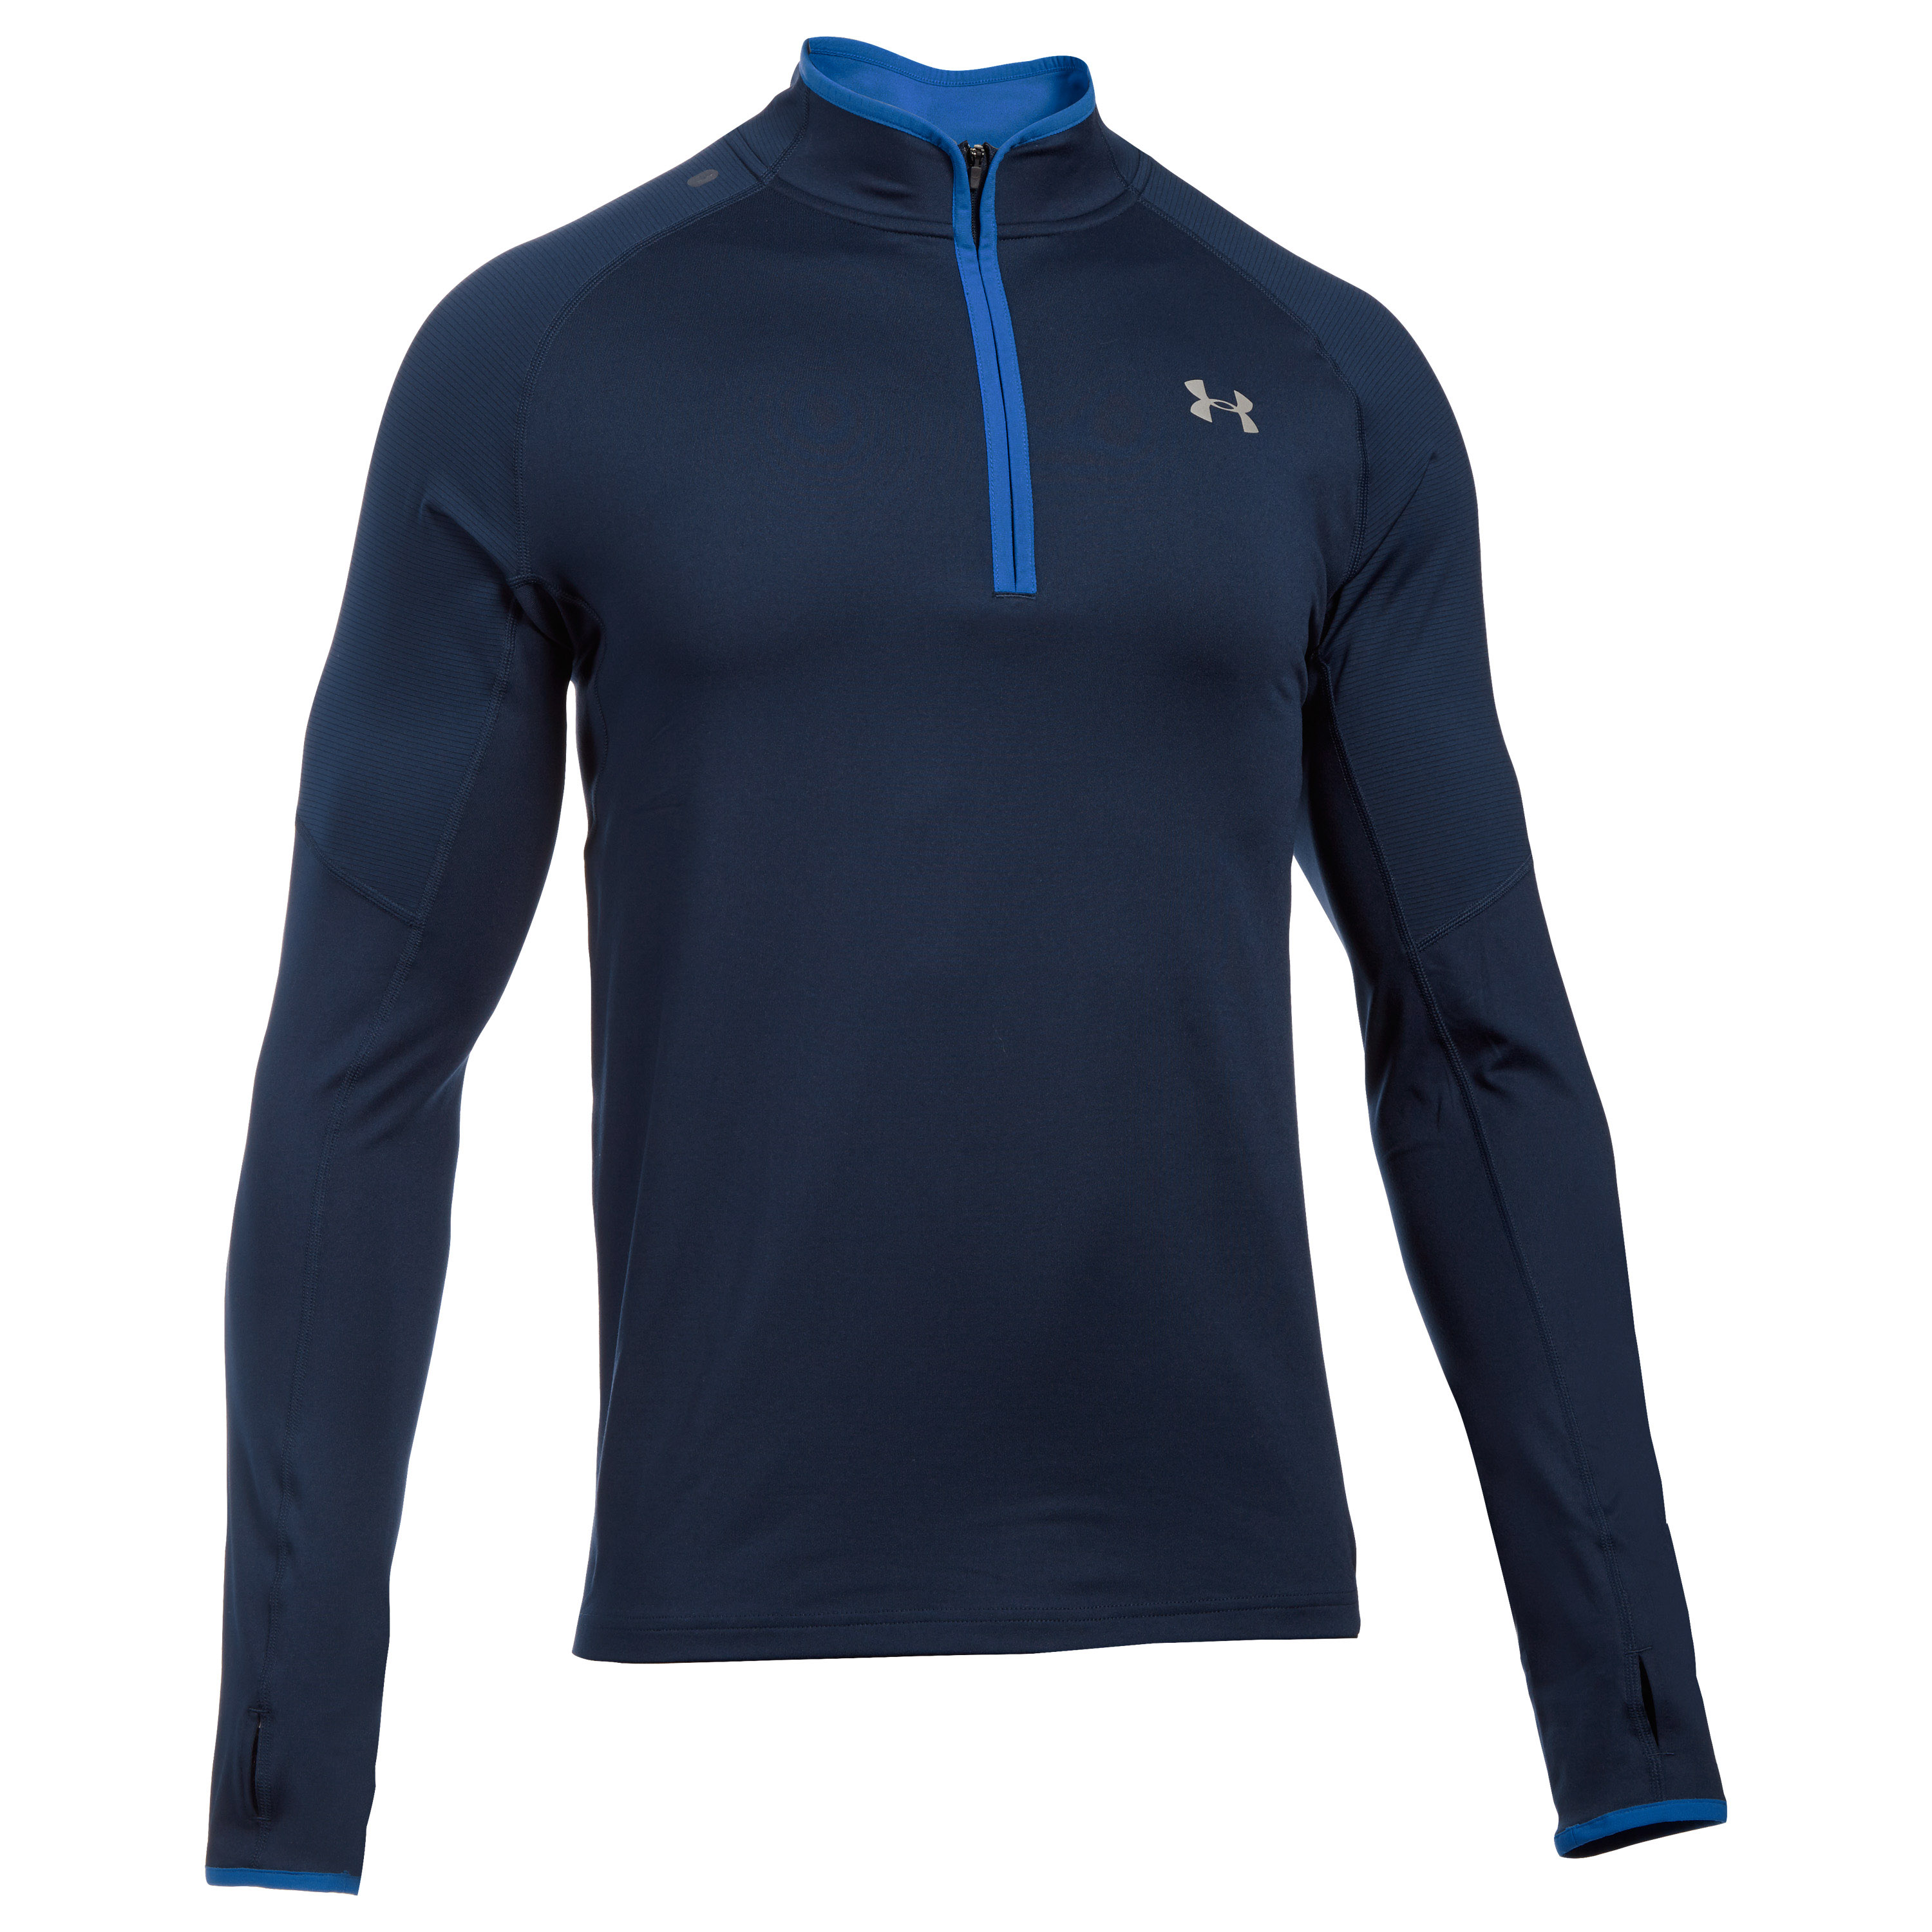 Under Armour Langarmshirt NoBreaks 1/4 Zip blau